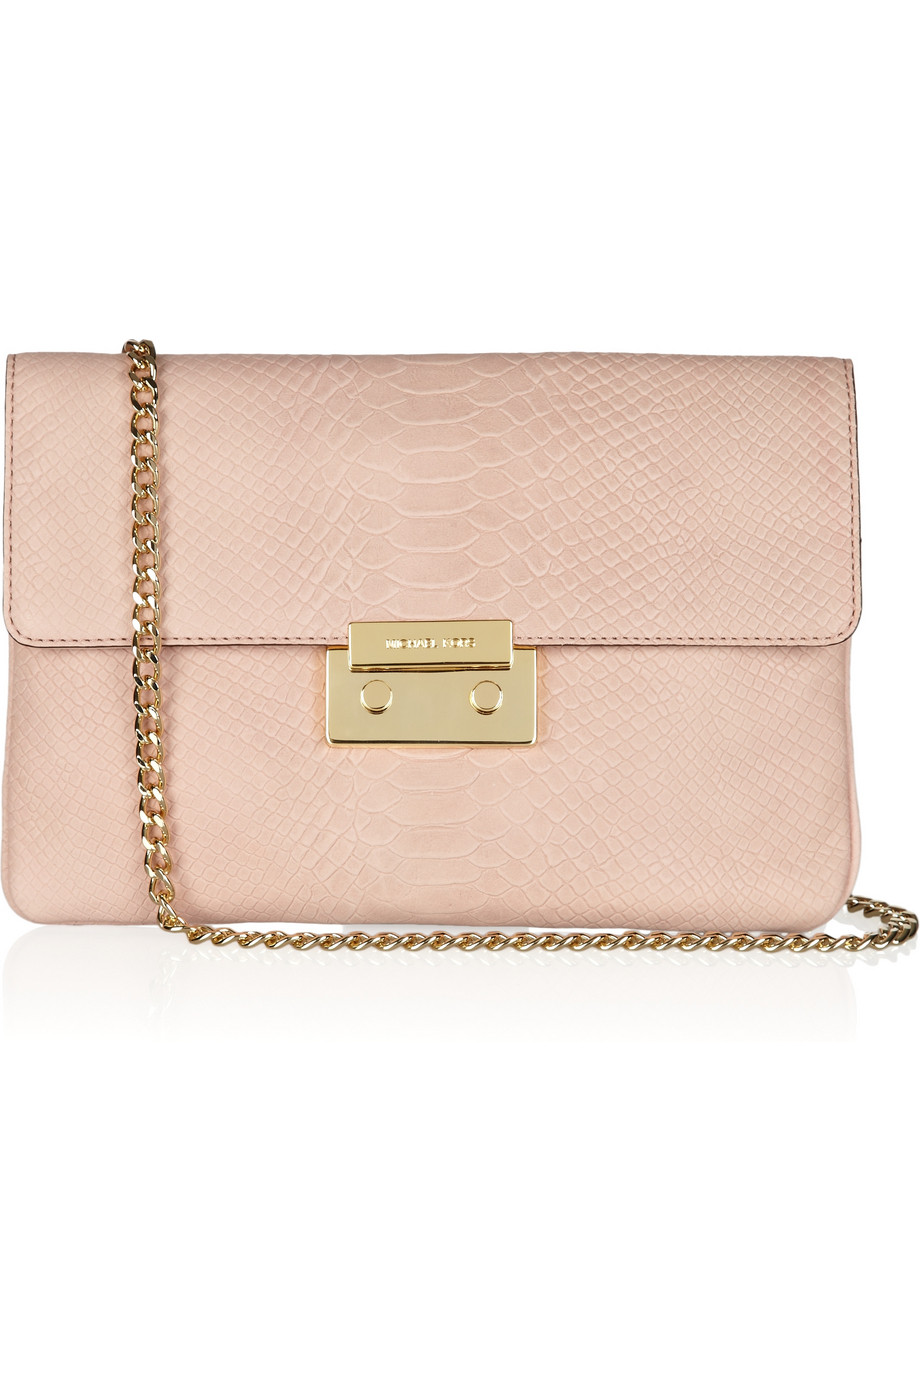 michael michael kors sloan python effect leather clutch in pink blush lyst. Black Bedroom Furniture Sets. Home Design Ideas